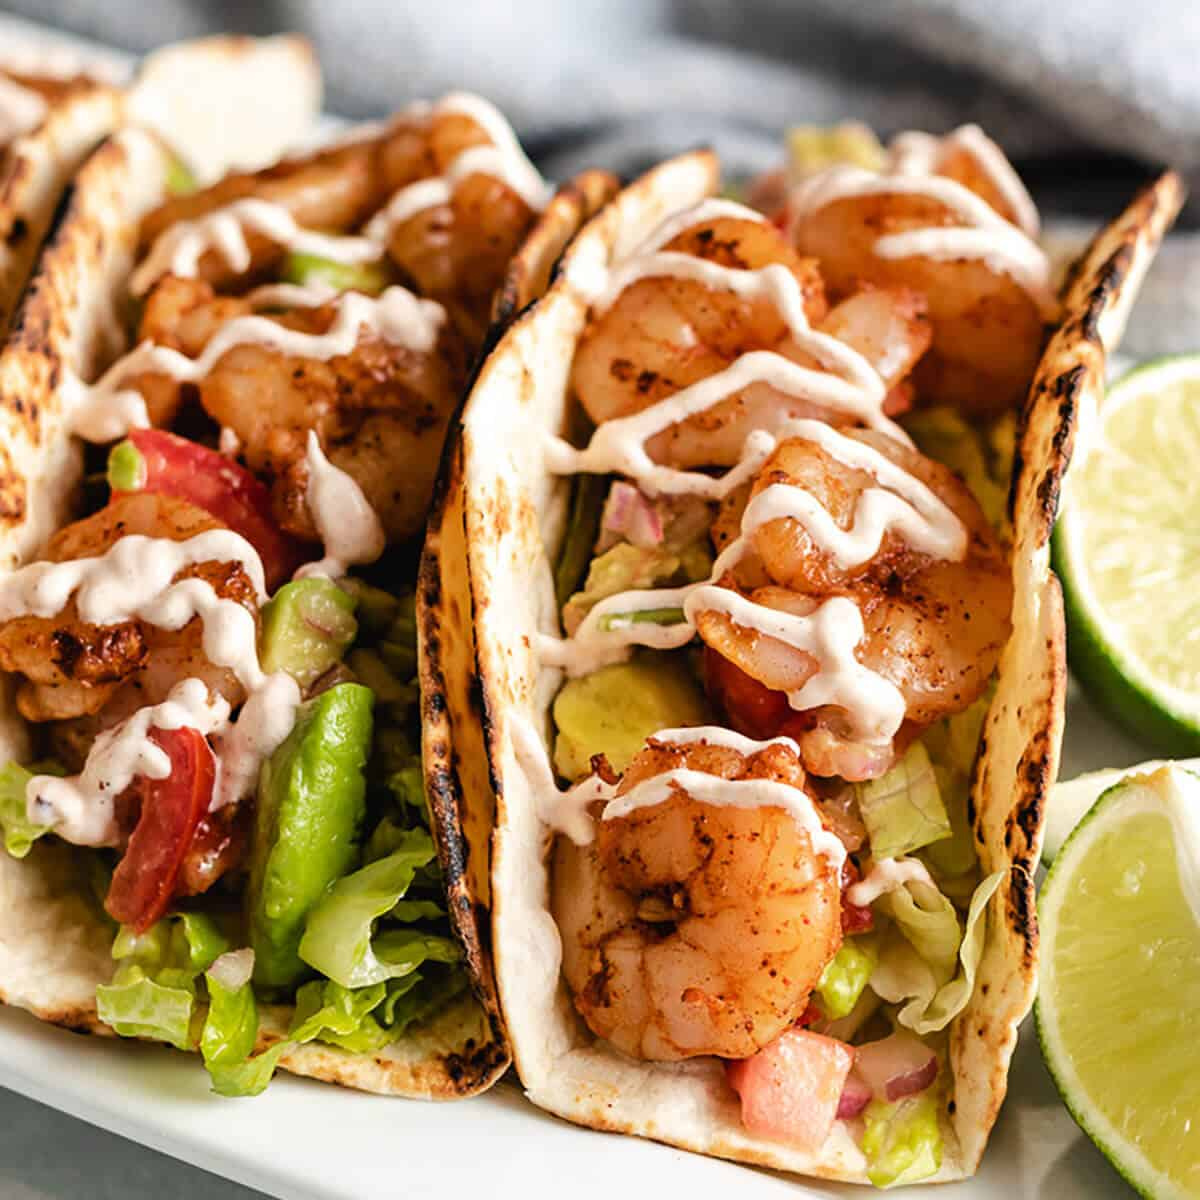 Two grilled shrimp tacos drizzled with chipotle sauce.